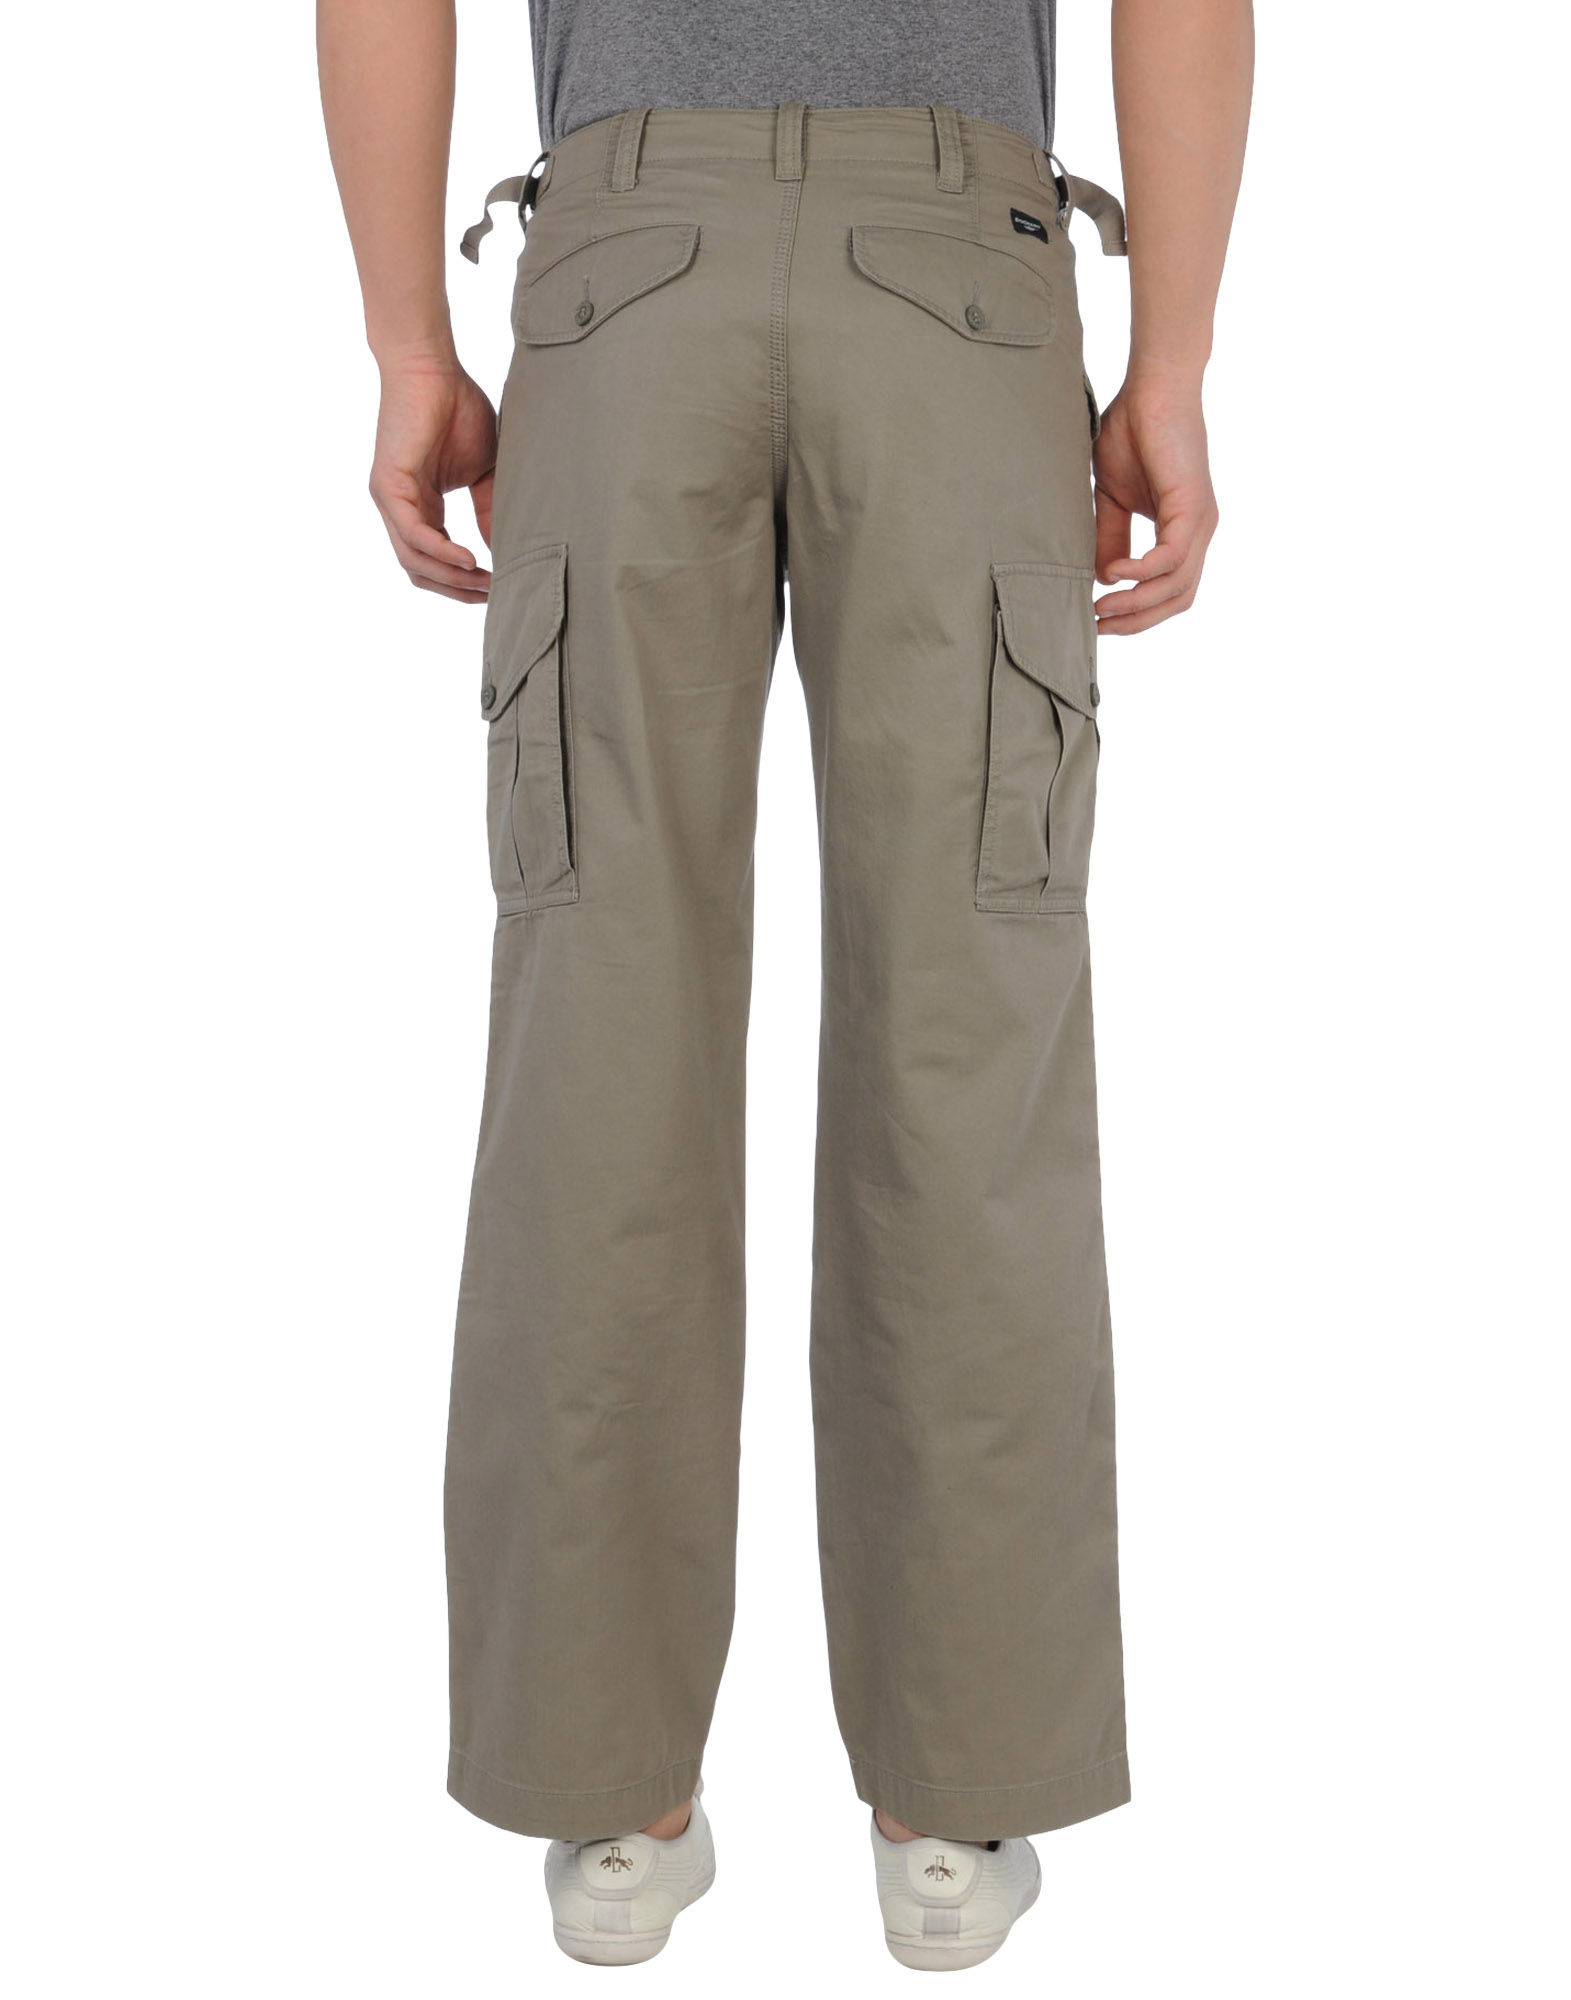 Dockers Cotton Casual Pants In Military Green Green For